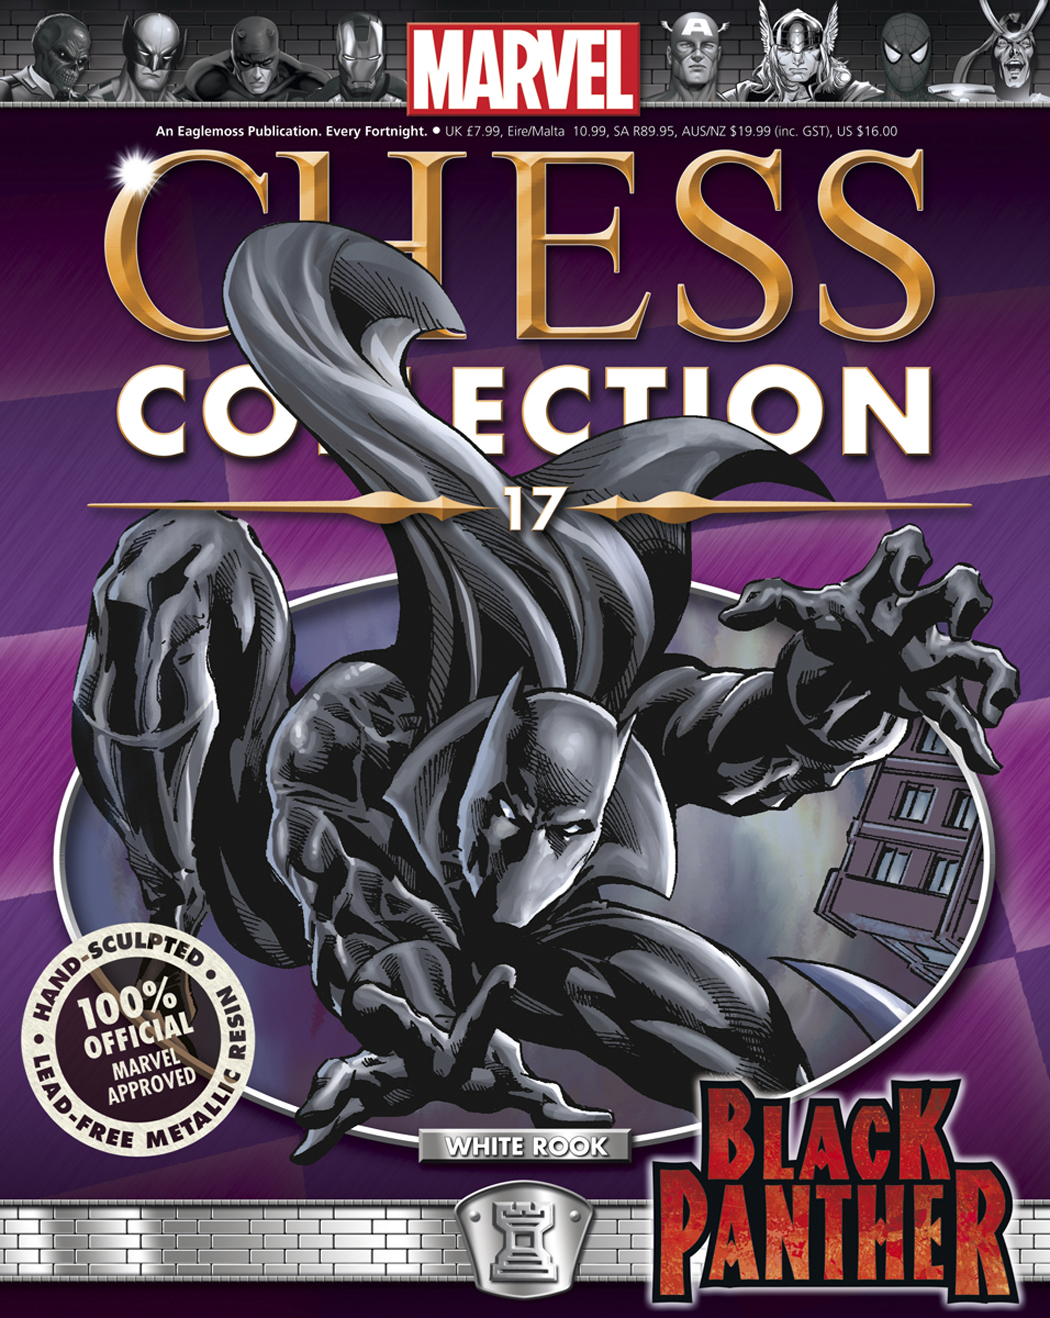 MARVEL CHESS FIG COLL MAG #17 BLACK PANTHER WHITE ROOK